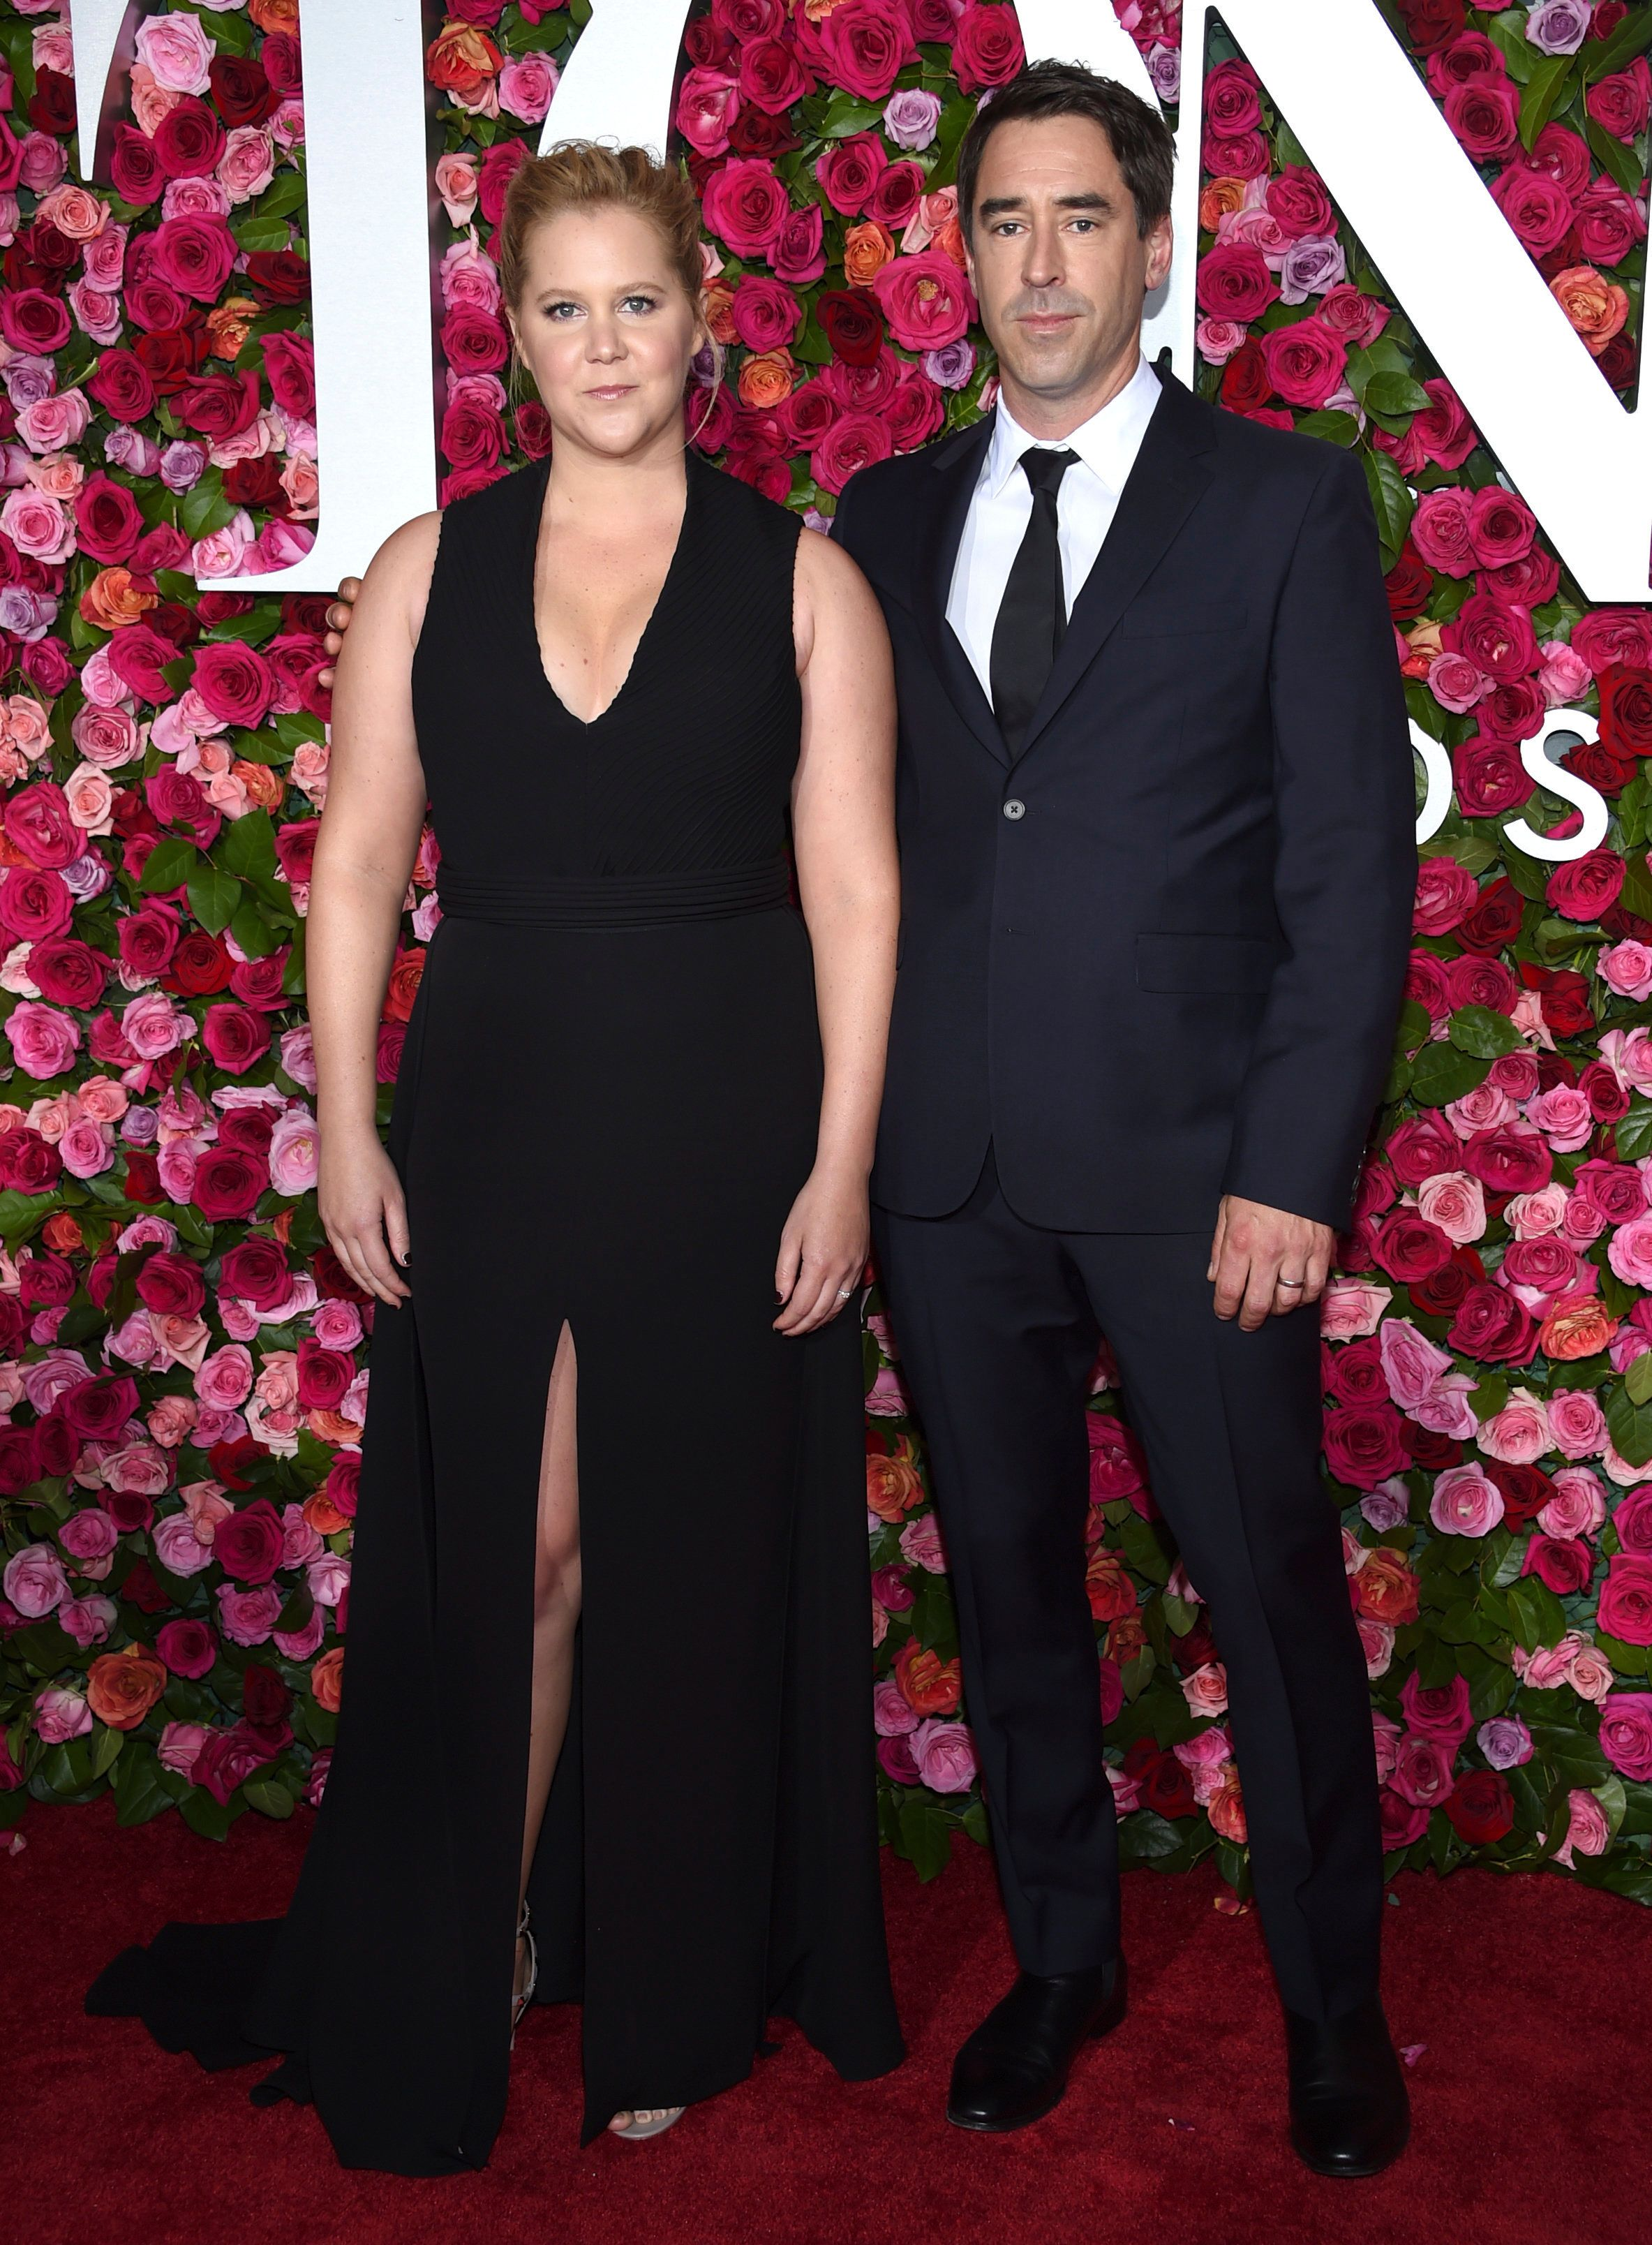 Amy Schumer and Chris Fischer at the 2018 Tony Awards.